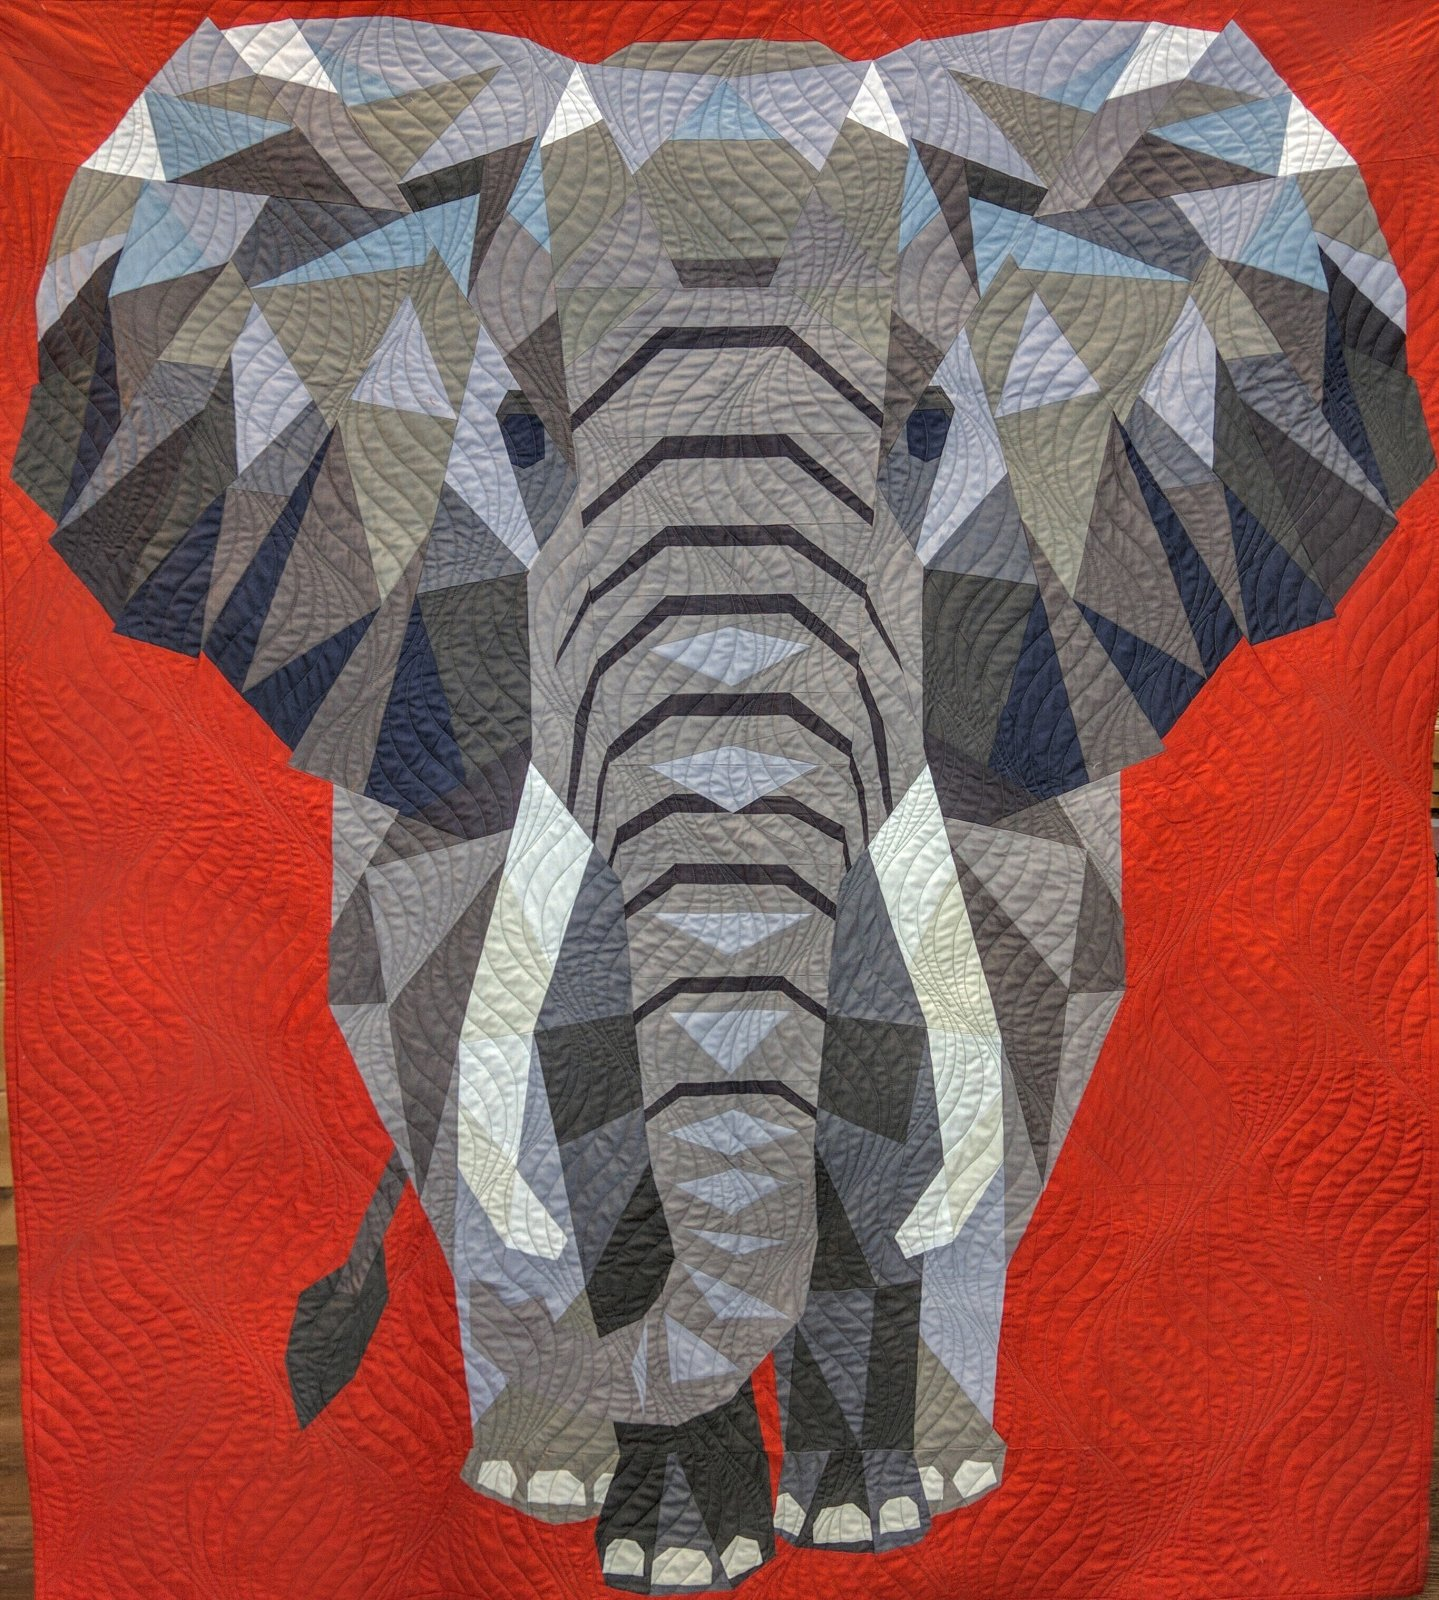 Elephant Abstractions Quilt Kit - Finished size 54 x 60